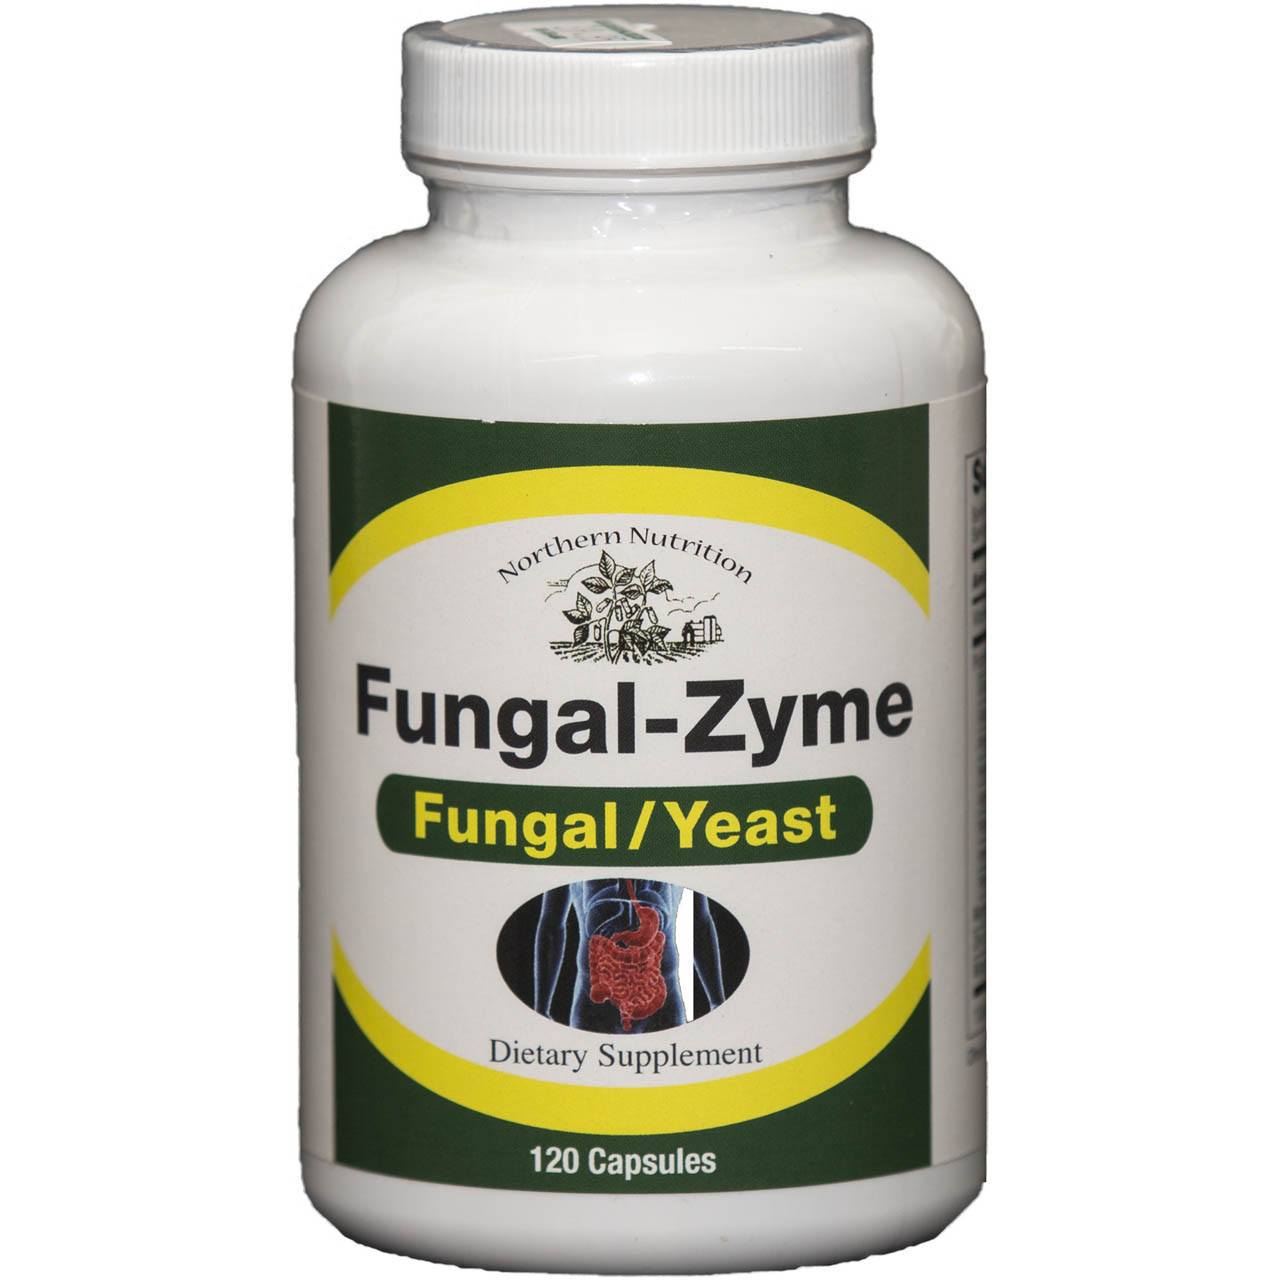 Fungal-Zyme